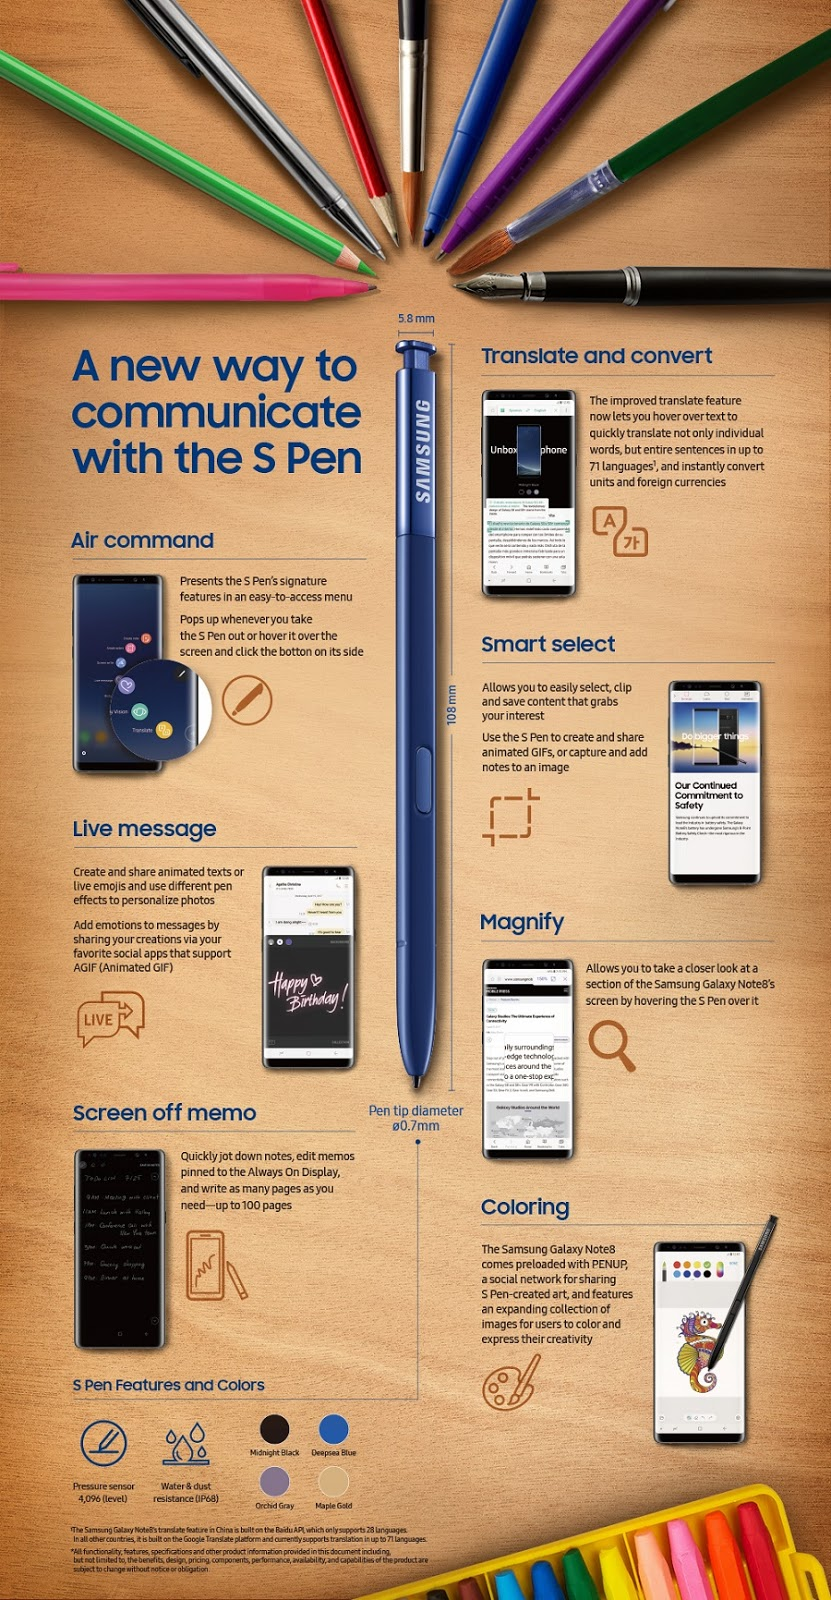 Features of S Pen: Infographic